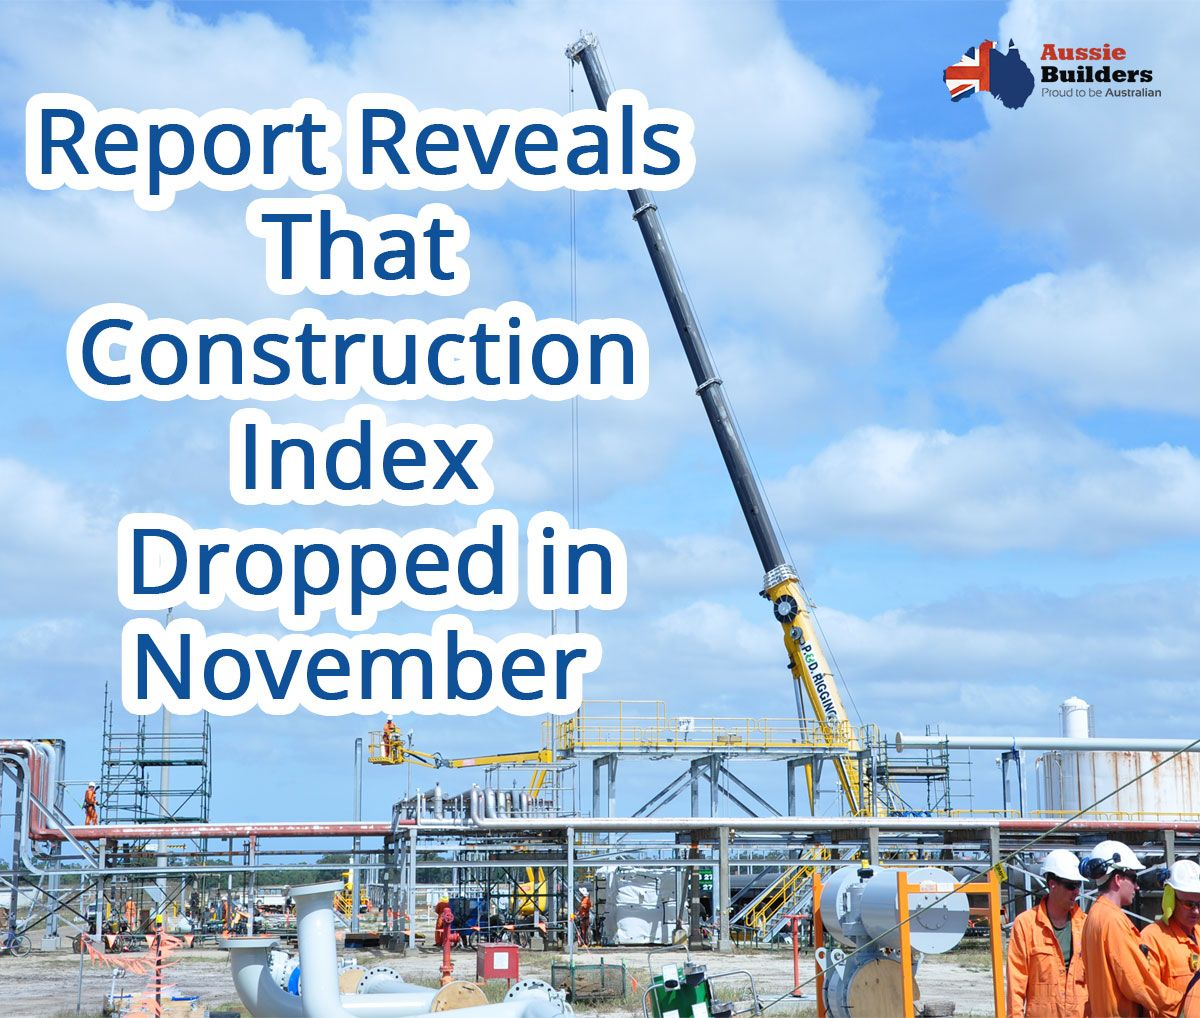 Report reveals that construction index in Australia dropped in November... Here is the complete news...